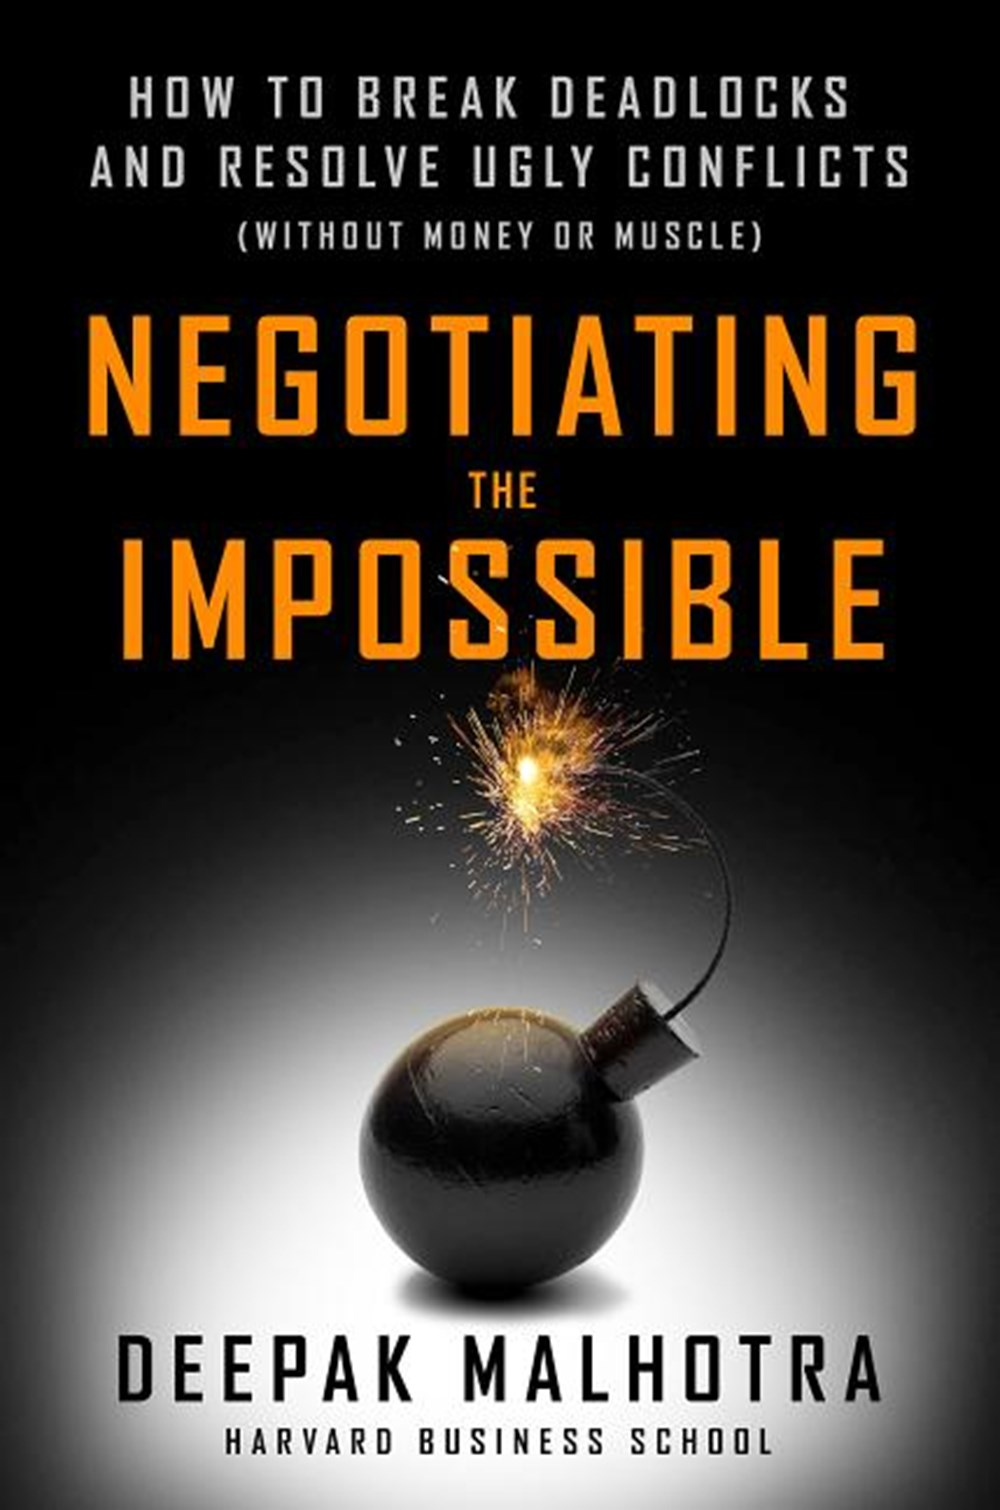 Negotiating the Impossible How to Break Deadlocks and Resolve Ugly Conflicts (Without Money or Muscl